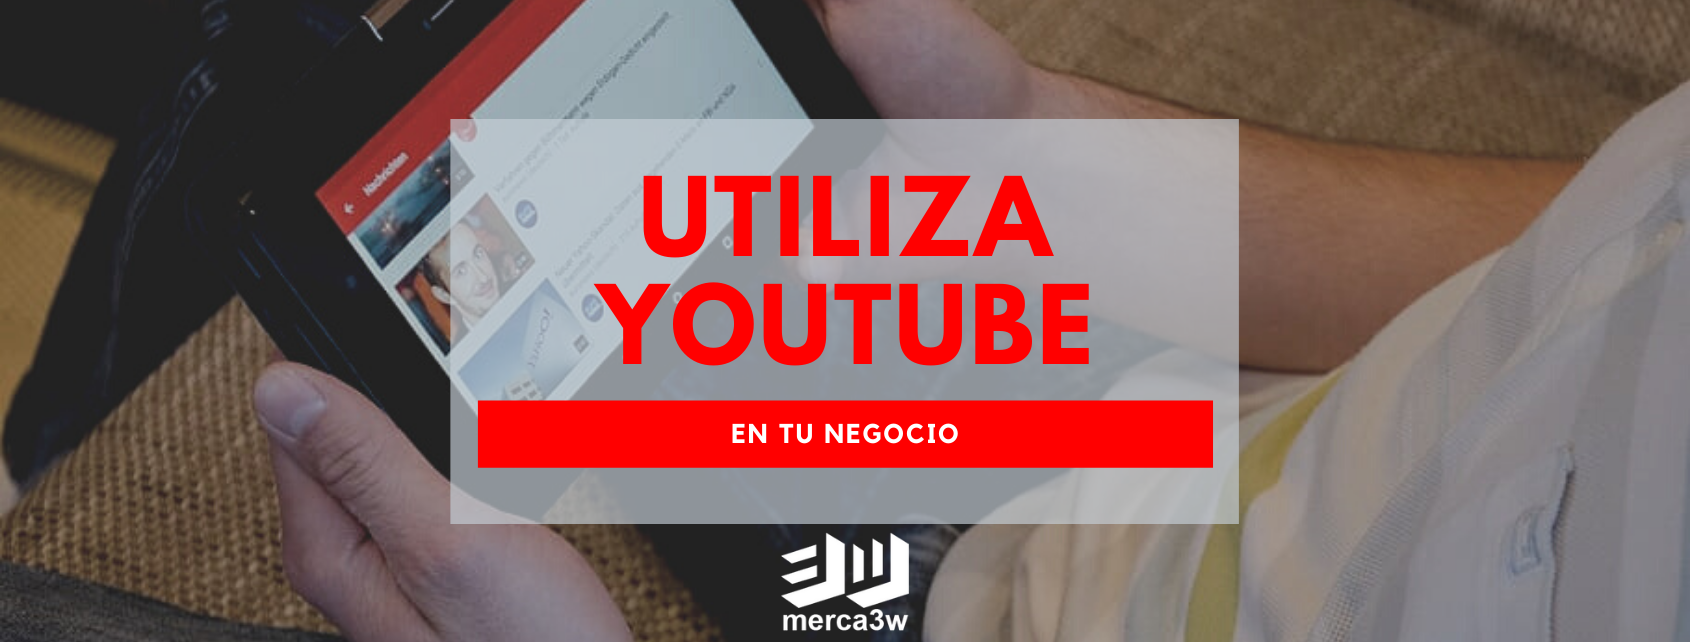 youtube-para-tu-negocio-merca3w-agencia-marketing-digital